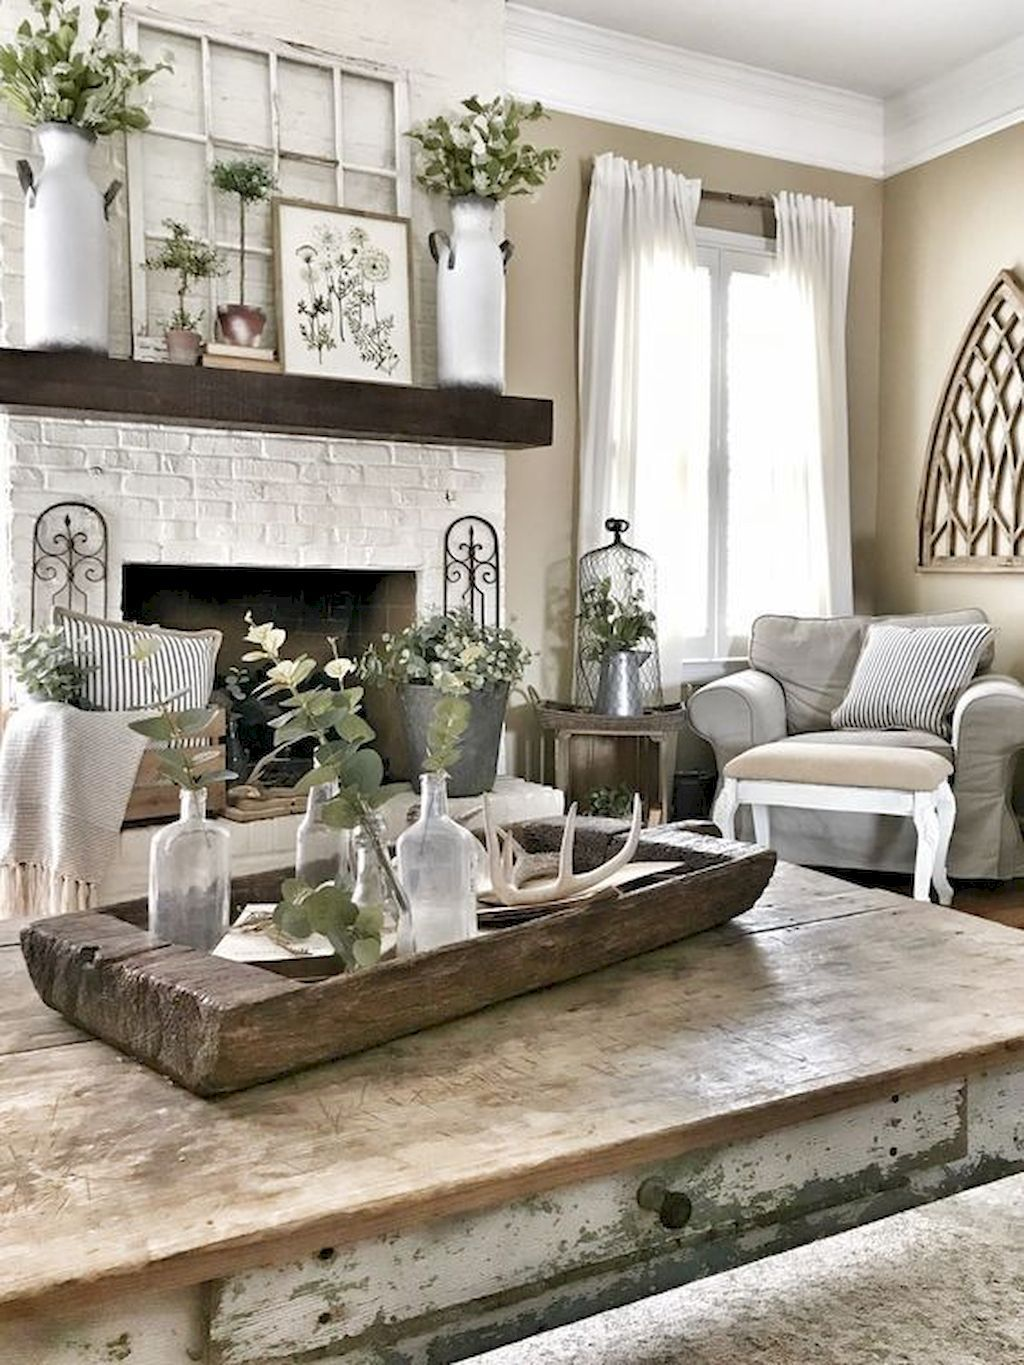 64 Cozy Farmhouse Living Room Decor Ideas - HomeSpecially